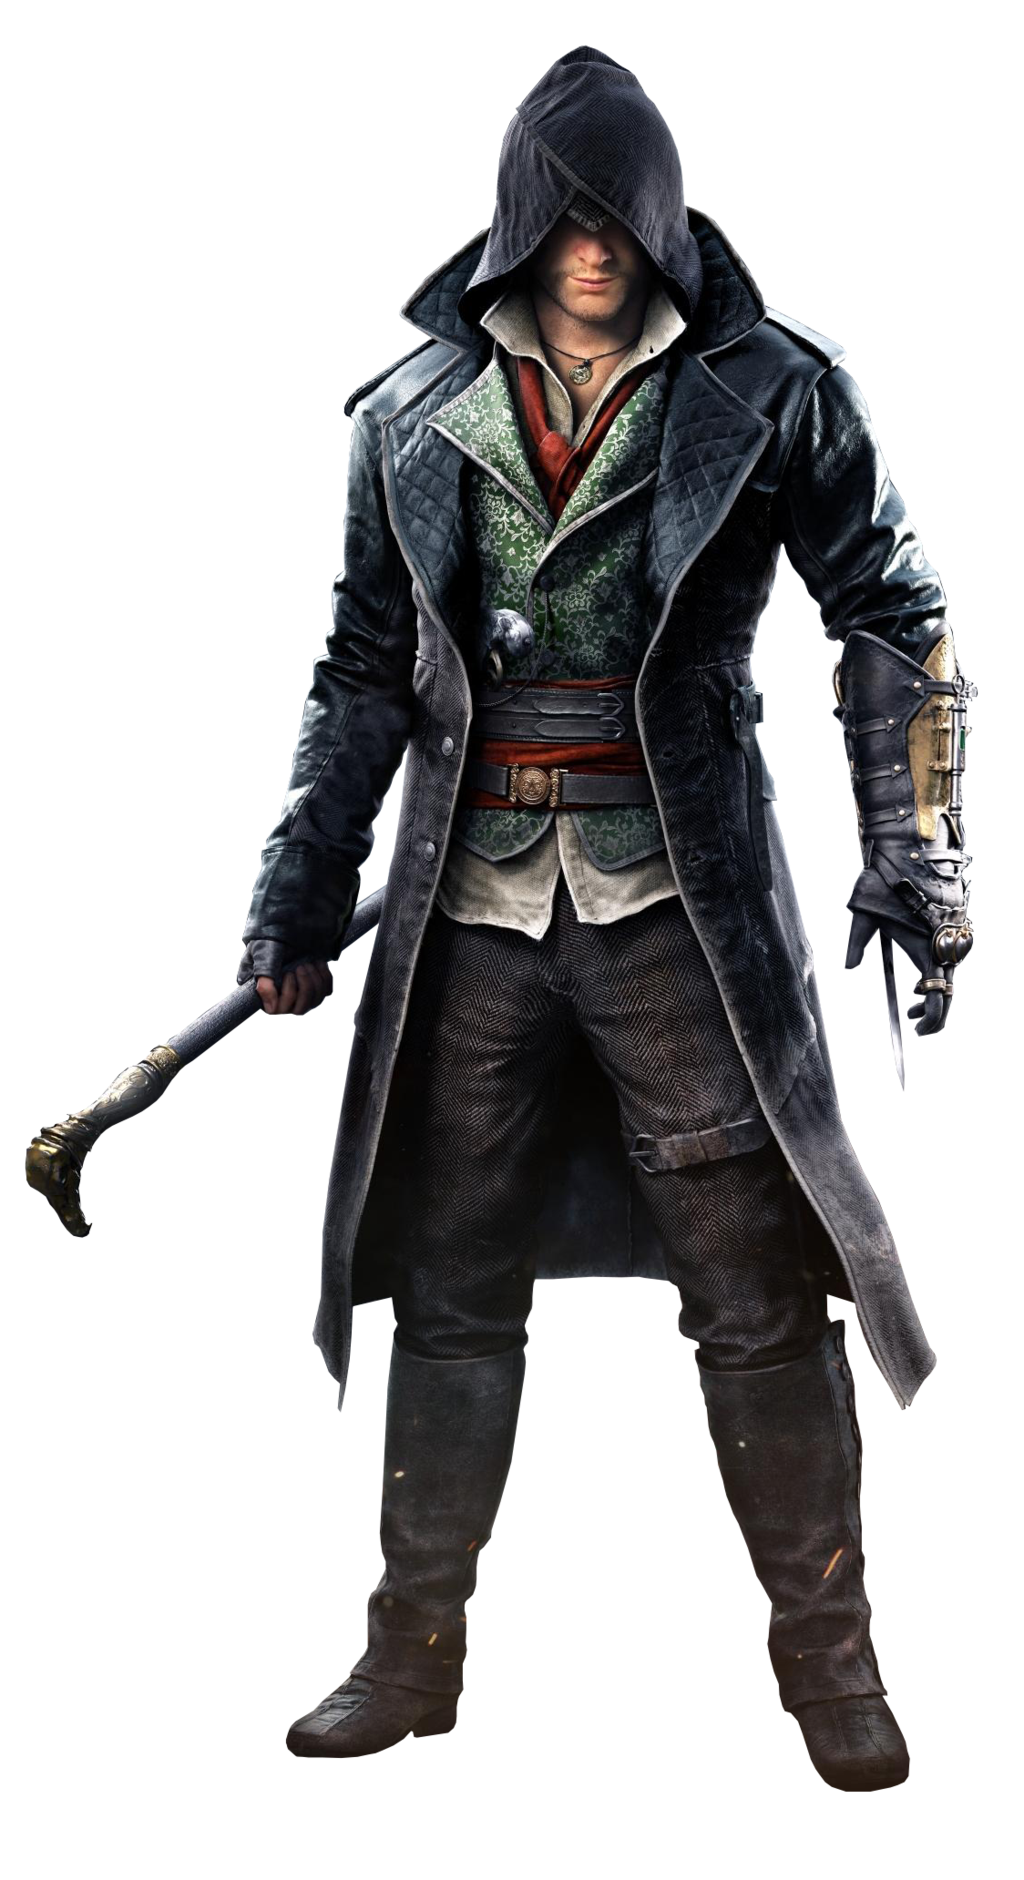 Assassinu0027s Creed Syndicate Render - Assassin Creed Syndicate PNG